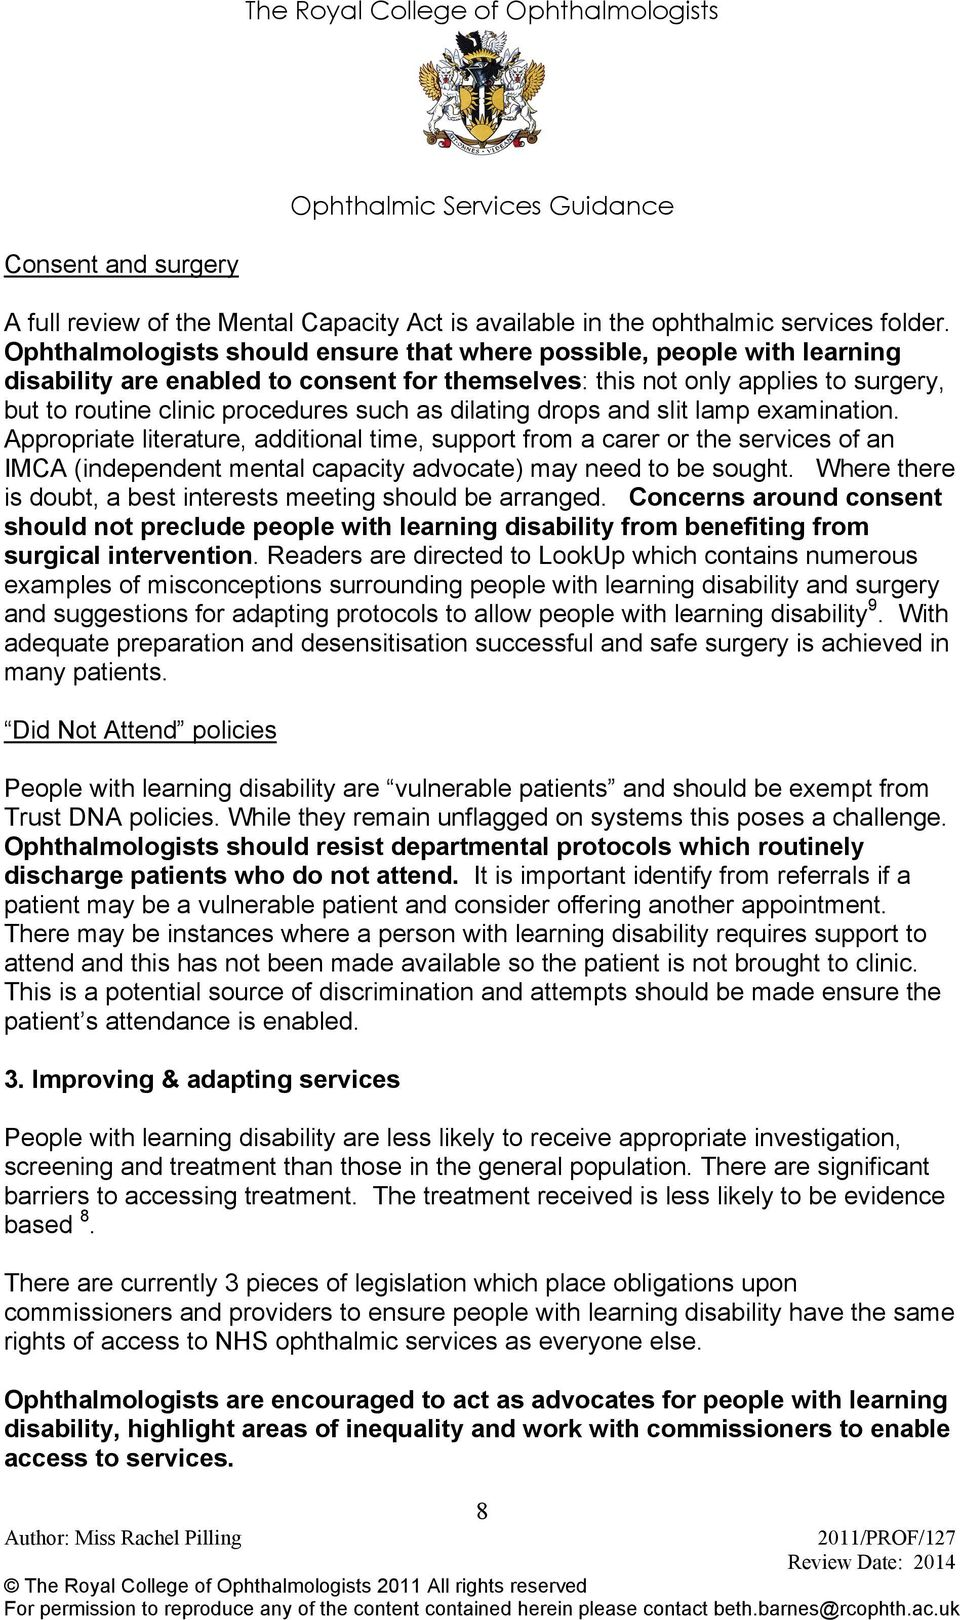 dilating drops and slit lamp examination. Appropriate literature, additional time, support from a carer or the services of an IMCA (independent mental capacity advocate) may need to be sought.